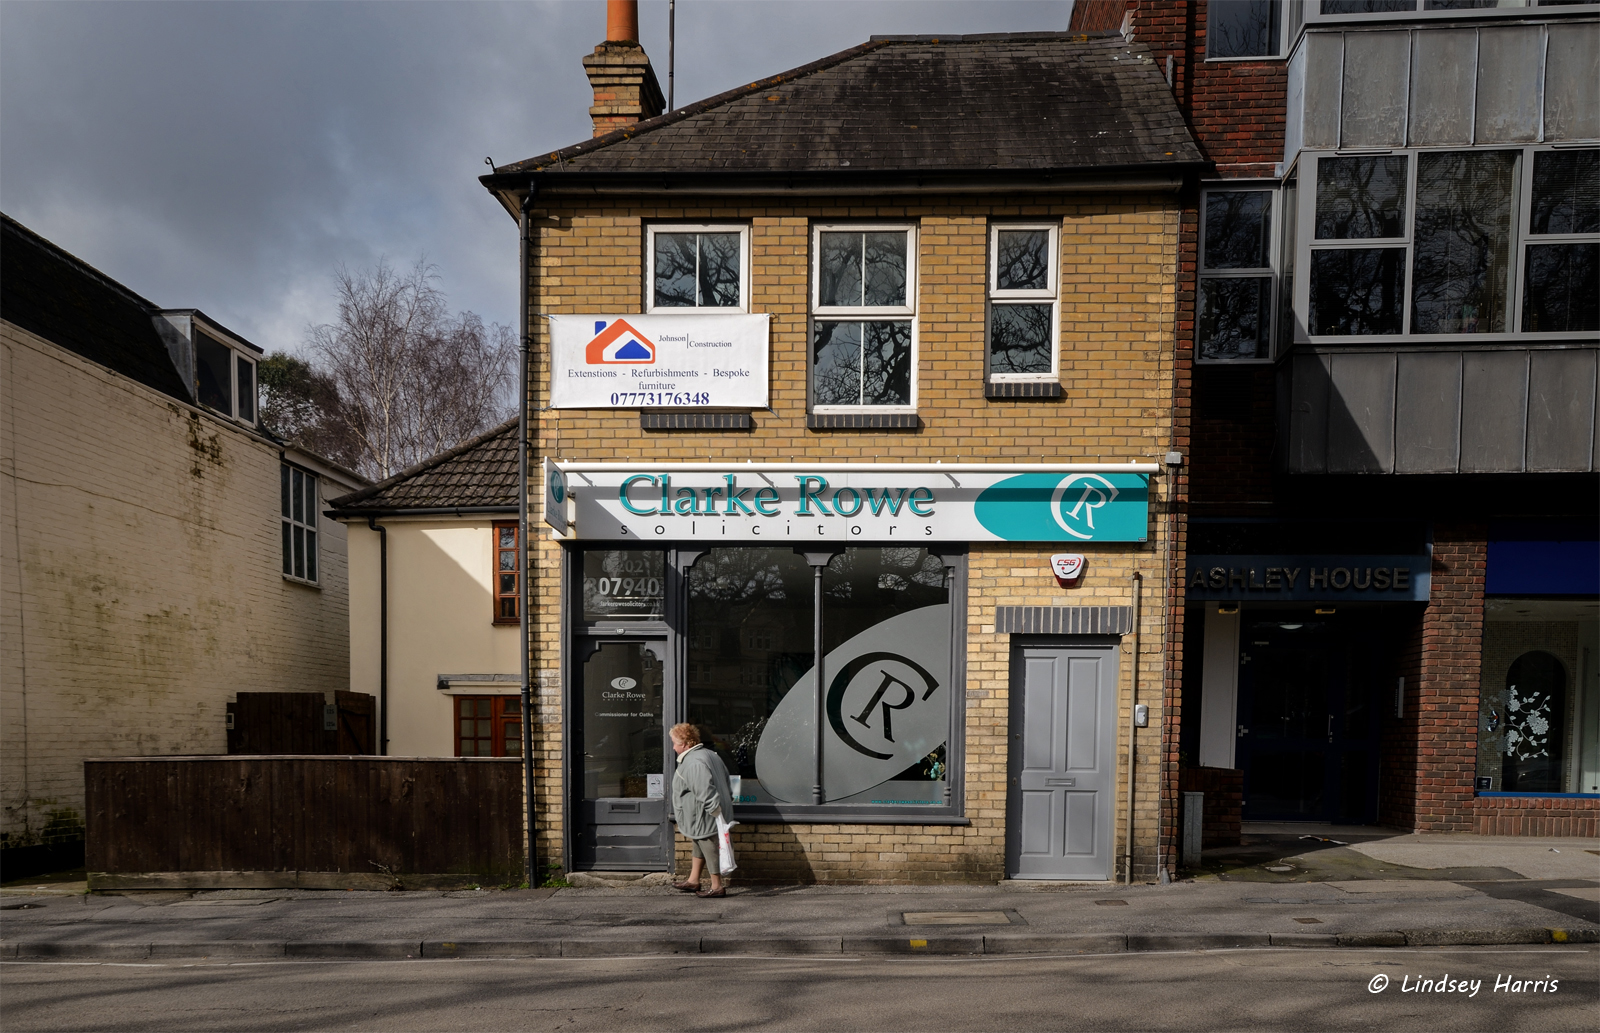 Clarke Rowe Solicitors, Lower Parkstone. Photo taken March 2015.